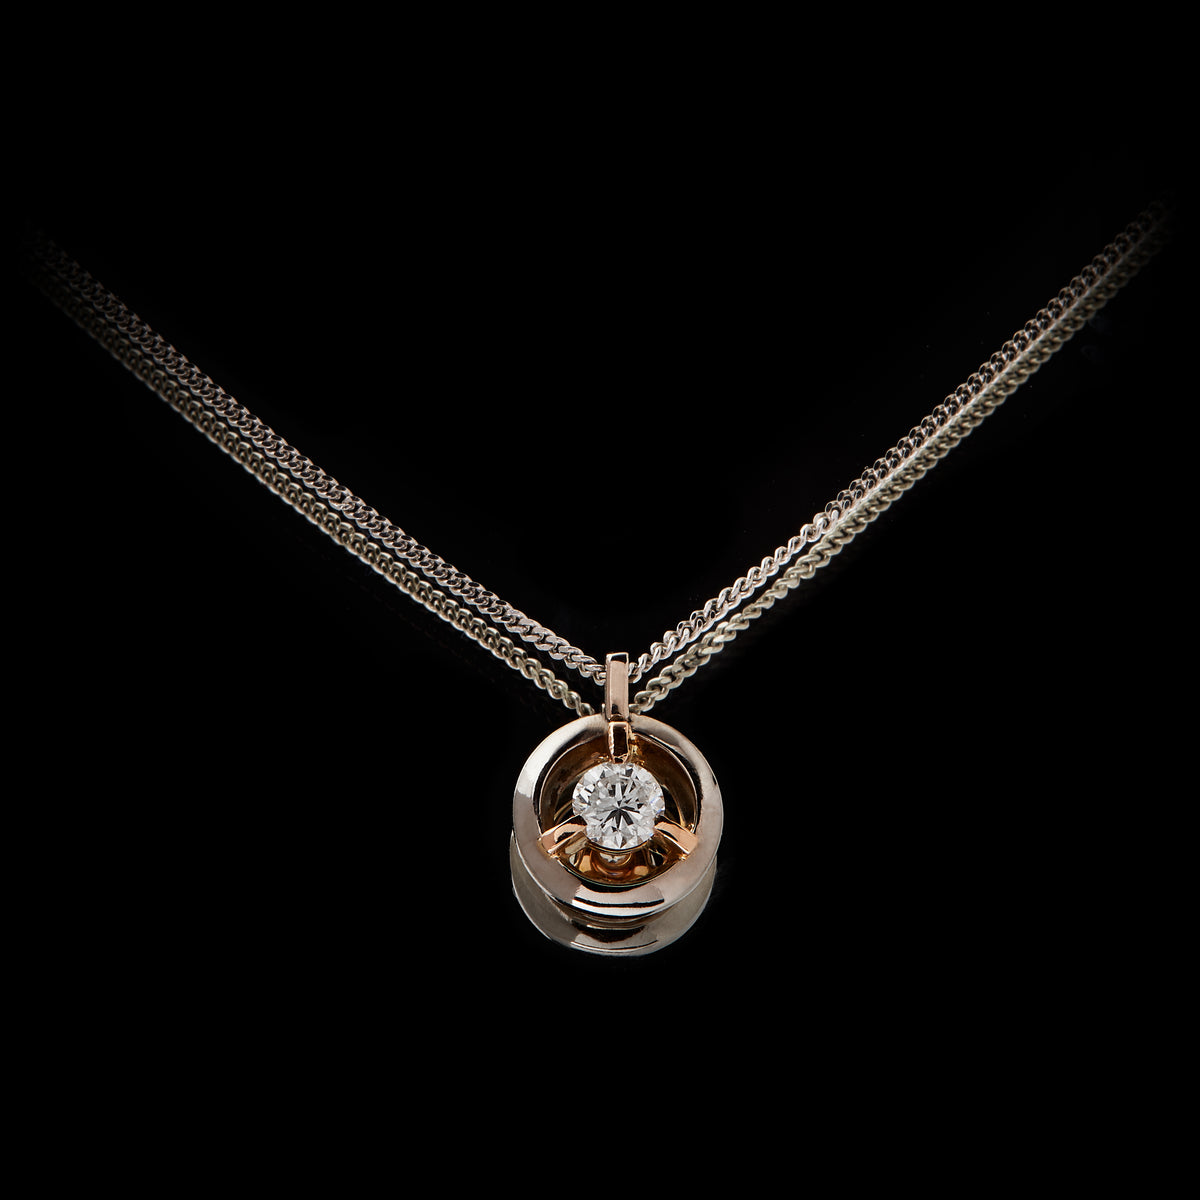 Guy and Max Orbit Three Claw Loop Pendant with 0.22 carat Round Brilliant Cut Diamond suspended in the centre, main view